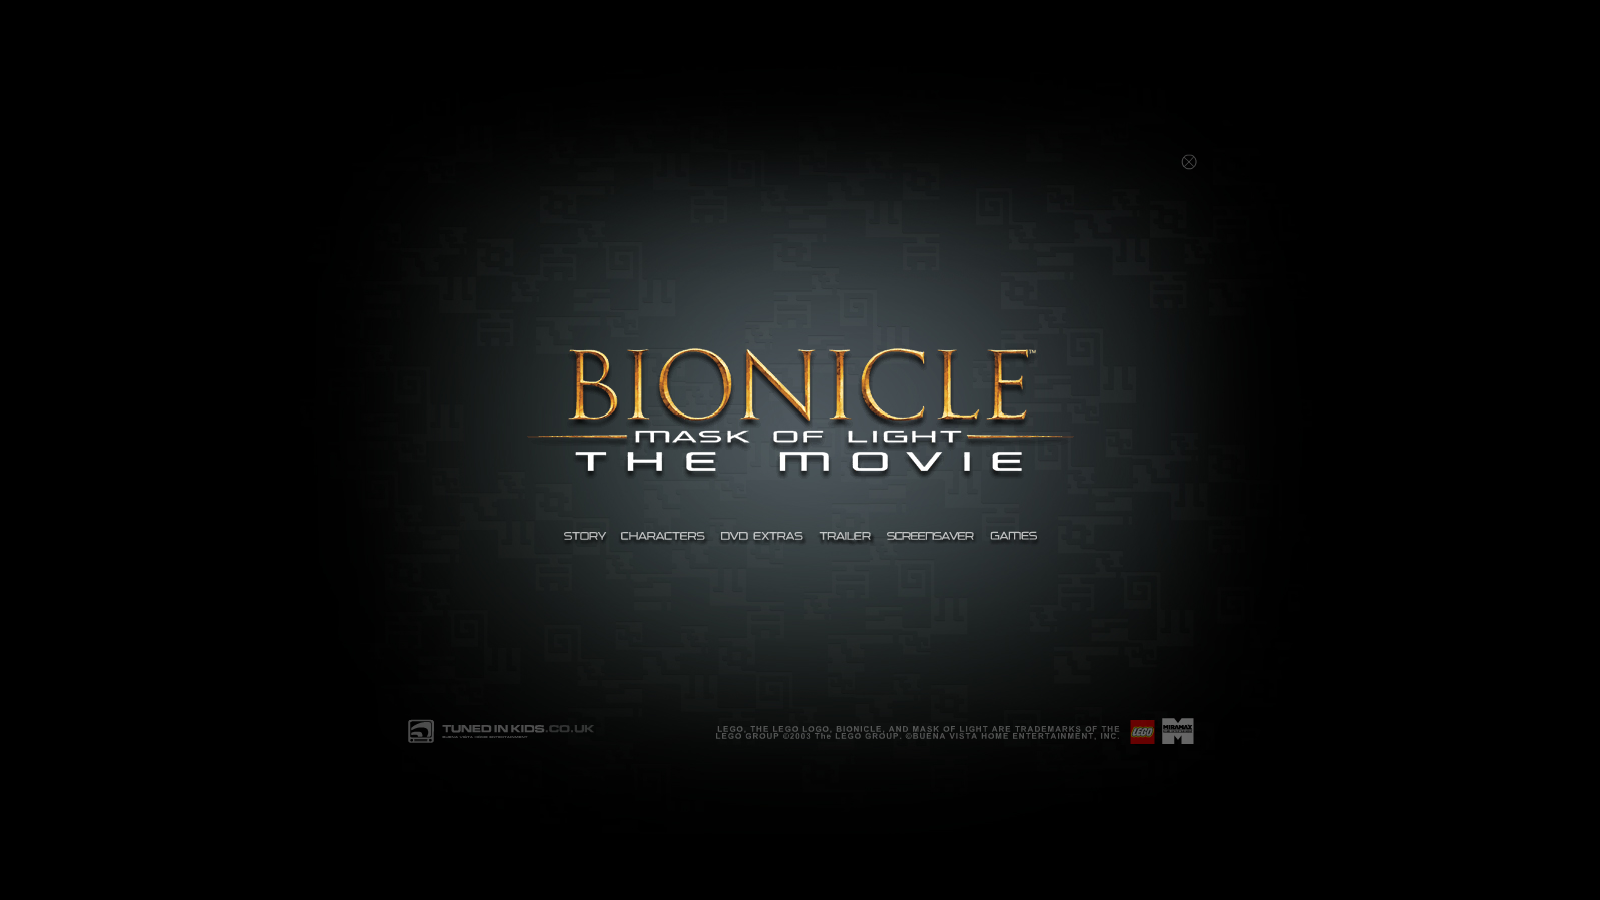 BIONICLE: Mask of Light Promo CD